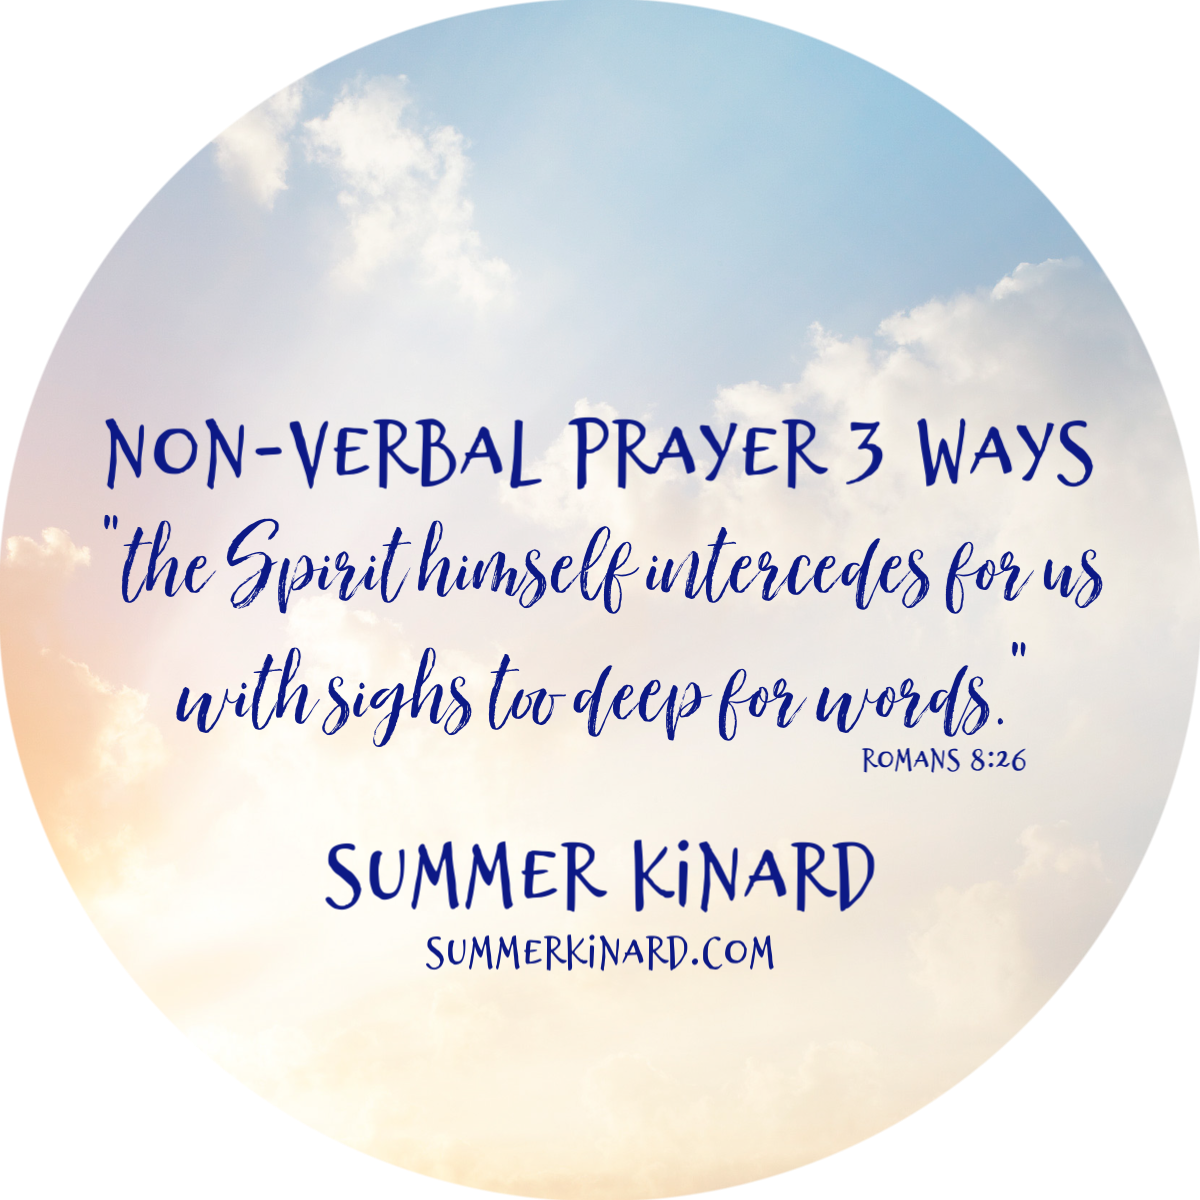 Non-Verbal Prayer 3 Ways